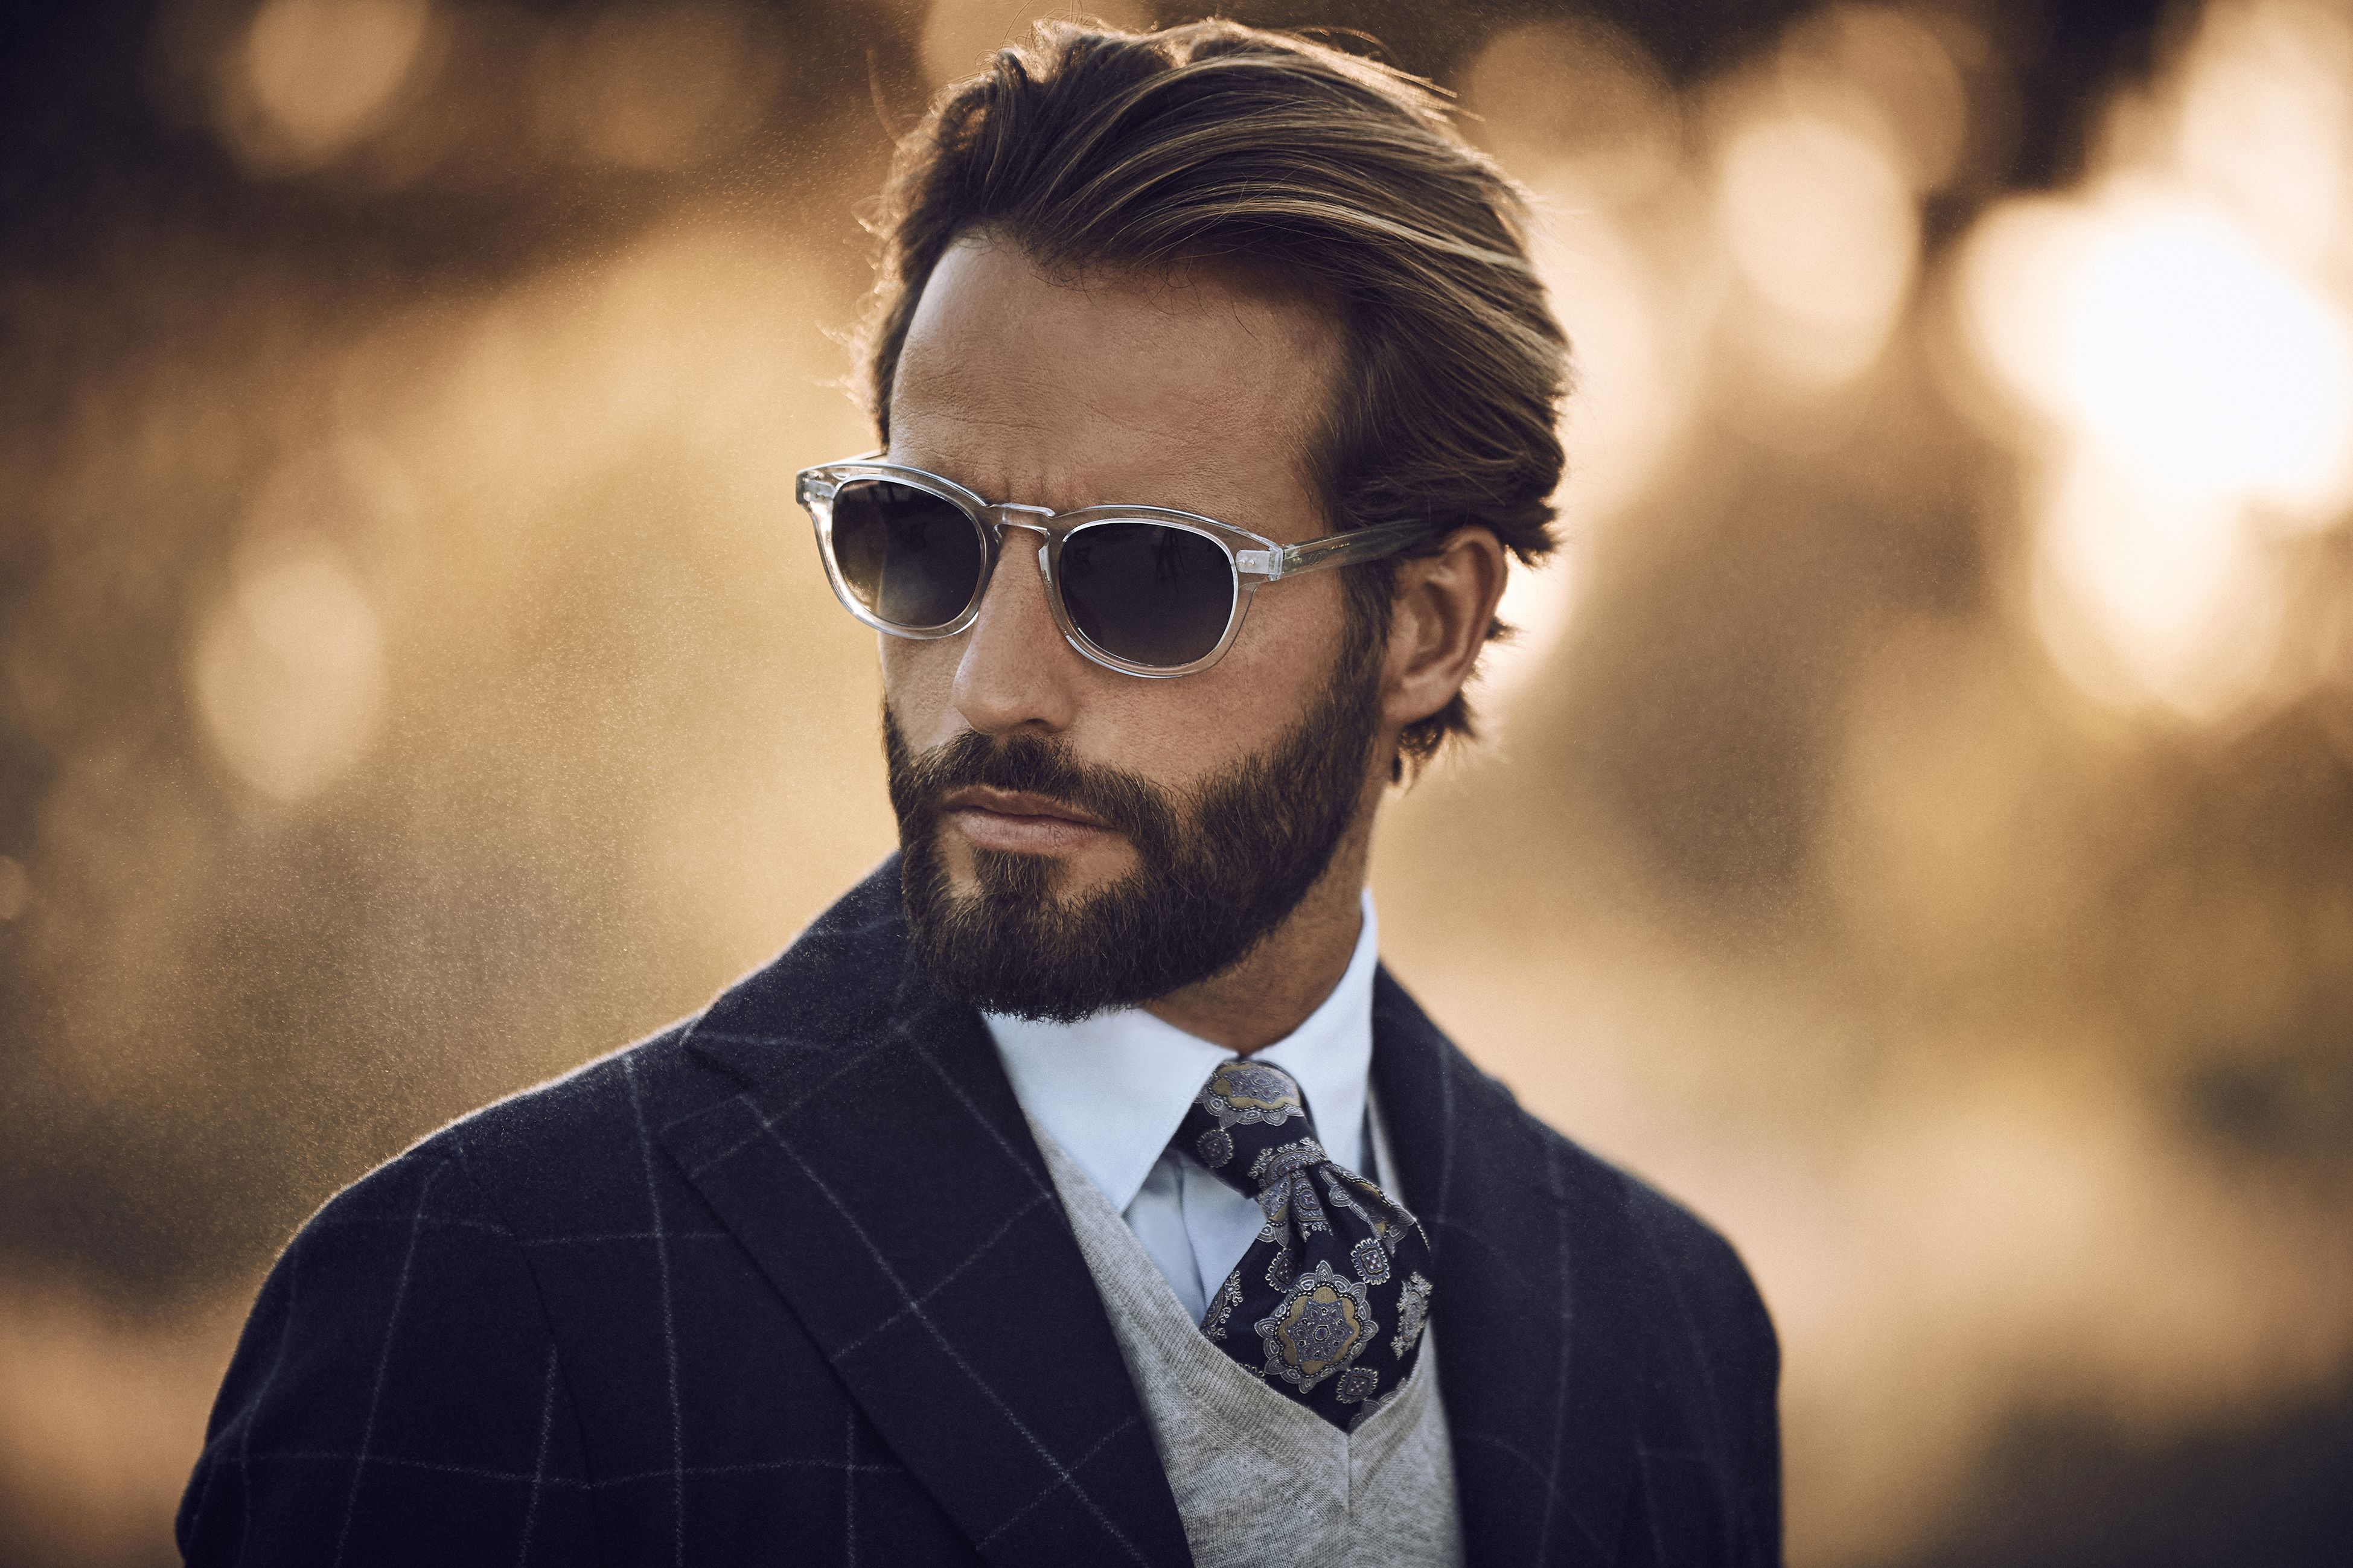 d8a14657ae70a Stenströms for Gents - Autumn 2018 collection Corte Cabelo